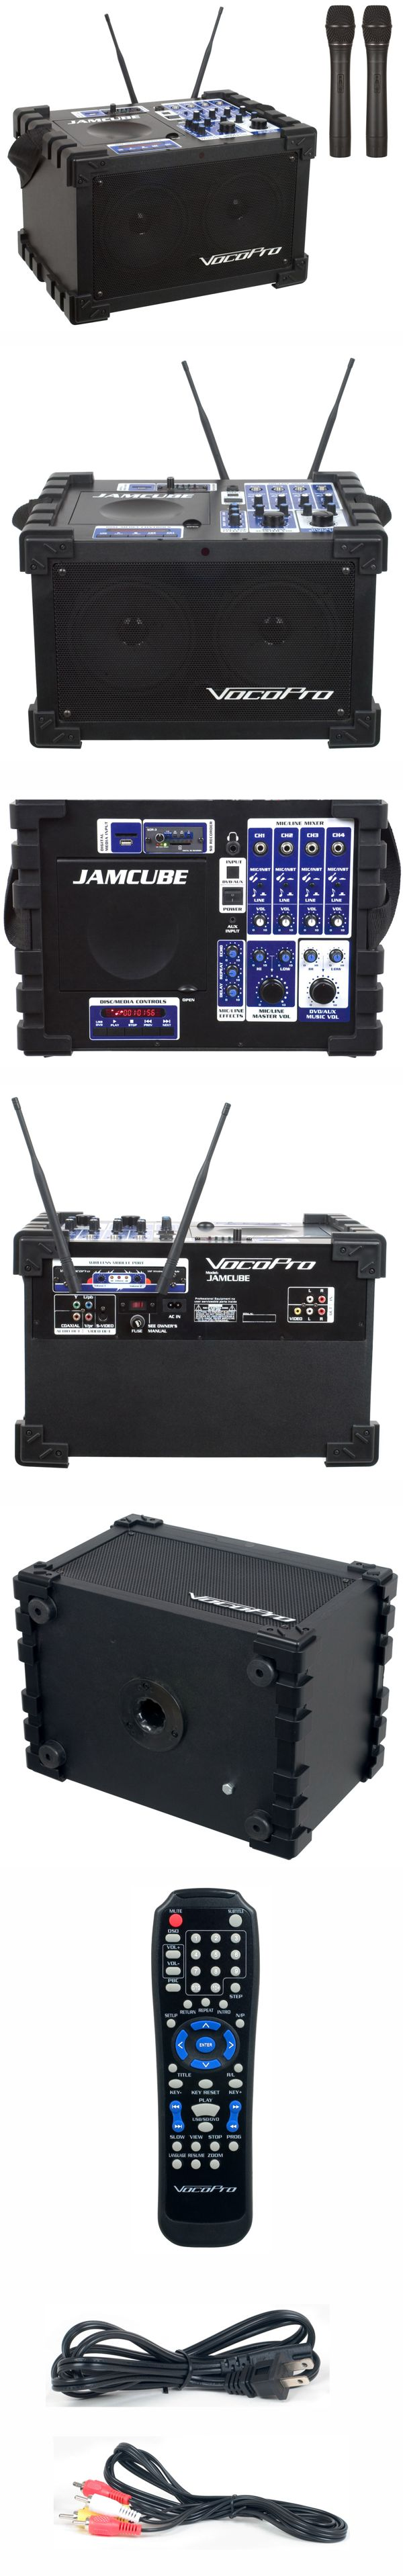 100W Stereo All-In-One Mini PA/Entertainment System (Set 4 - Freq C, D)